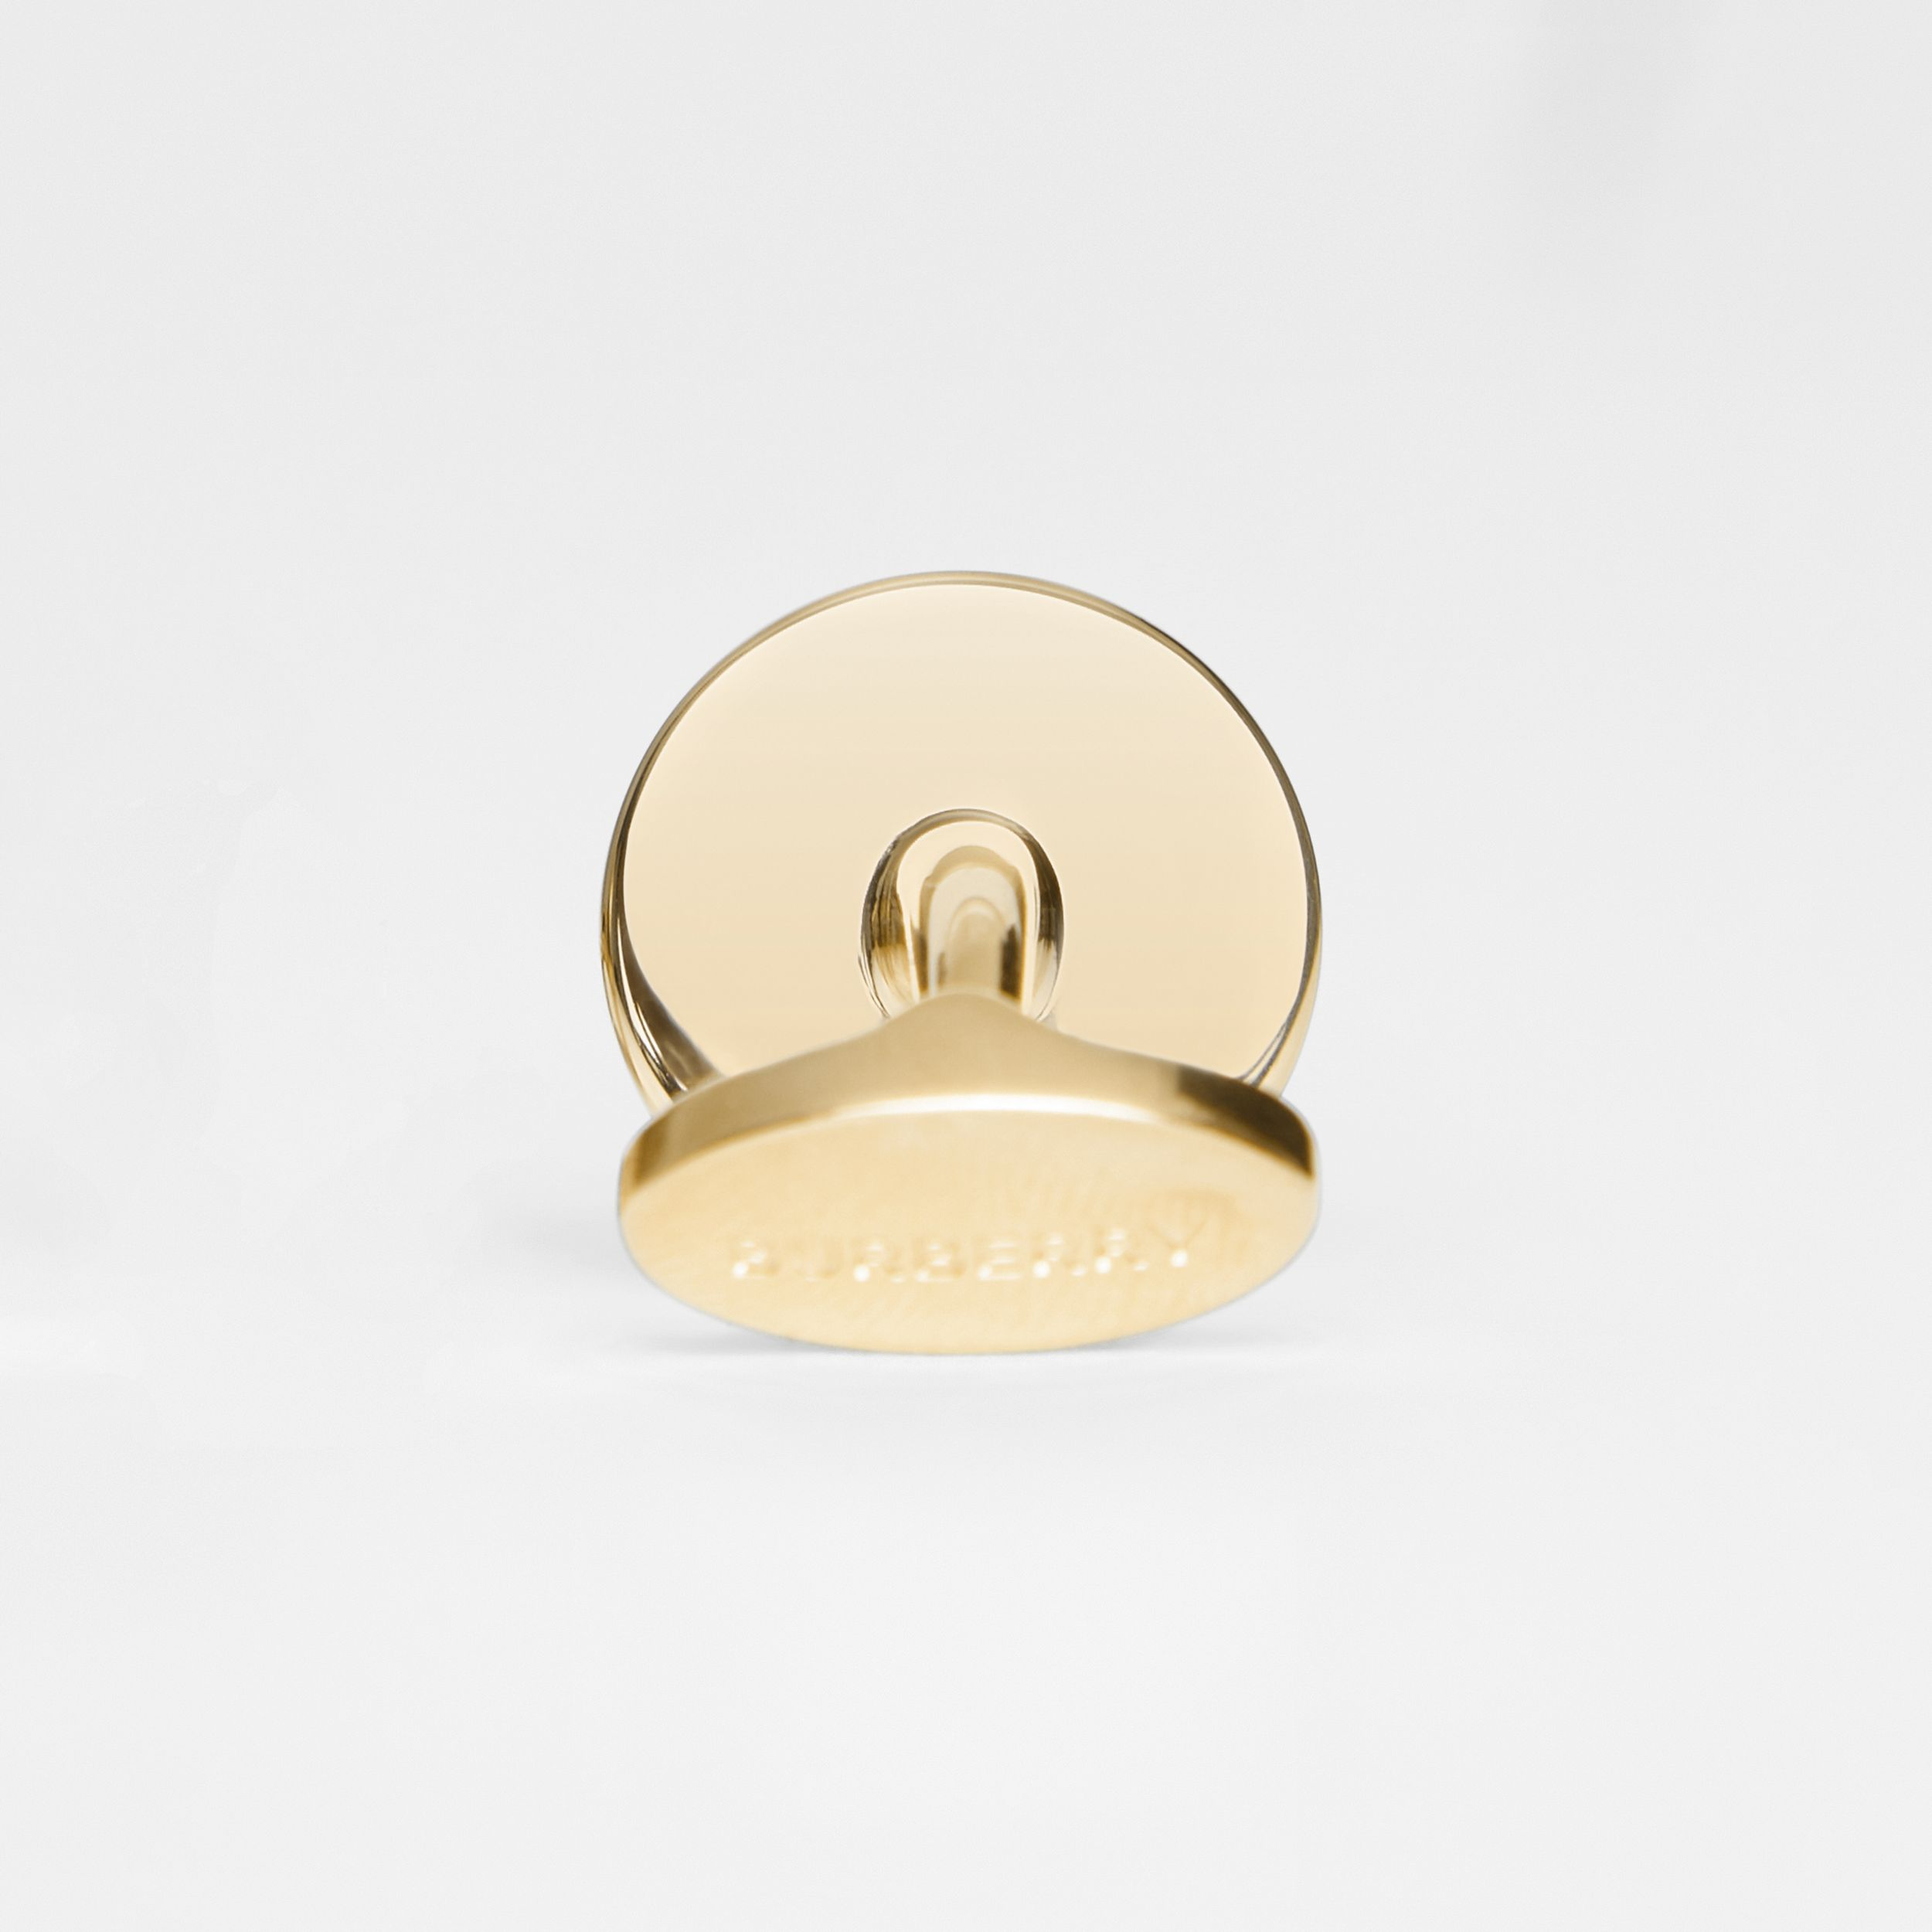 Engraved Gold-plated Cufflinks in Light - Men | Burberry - 2